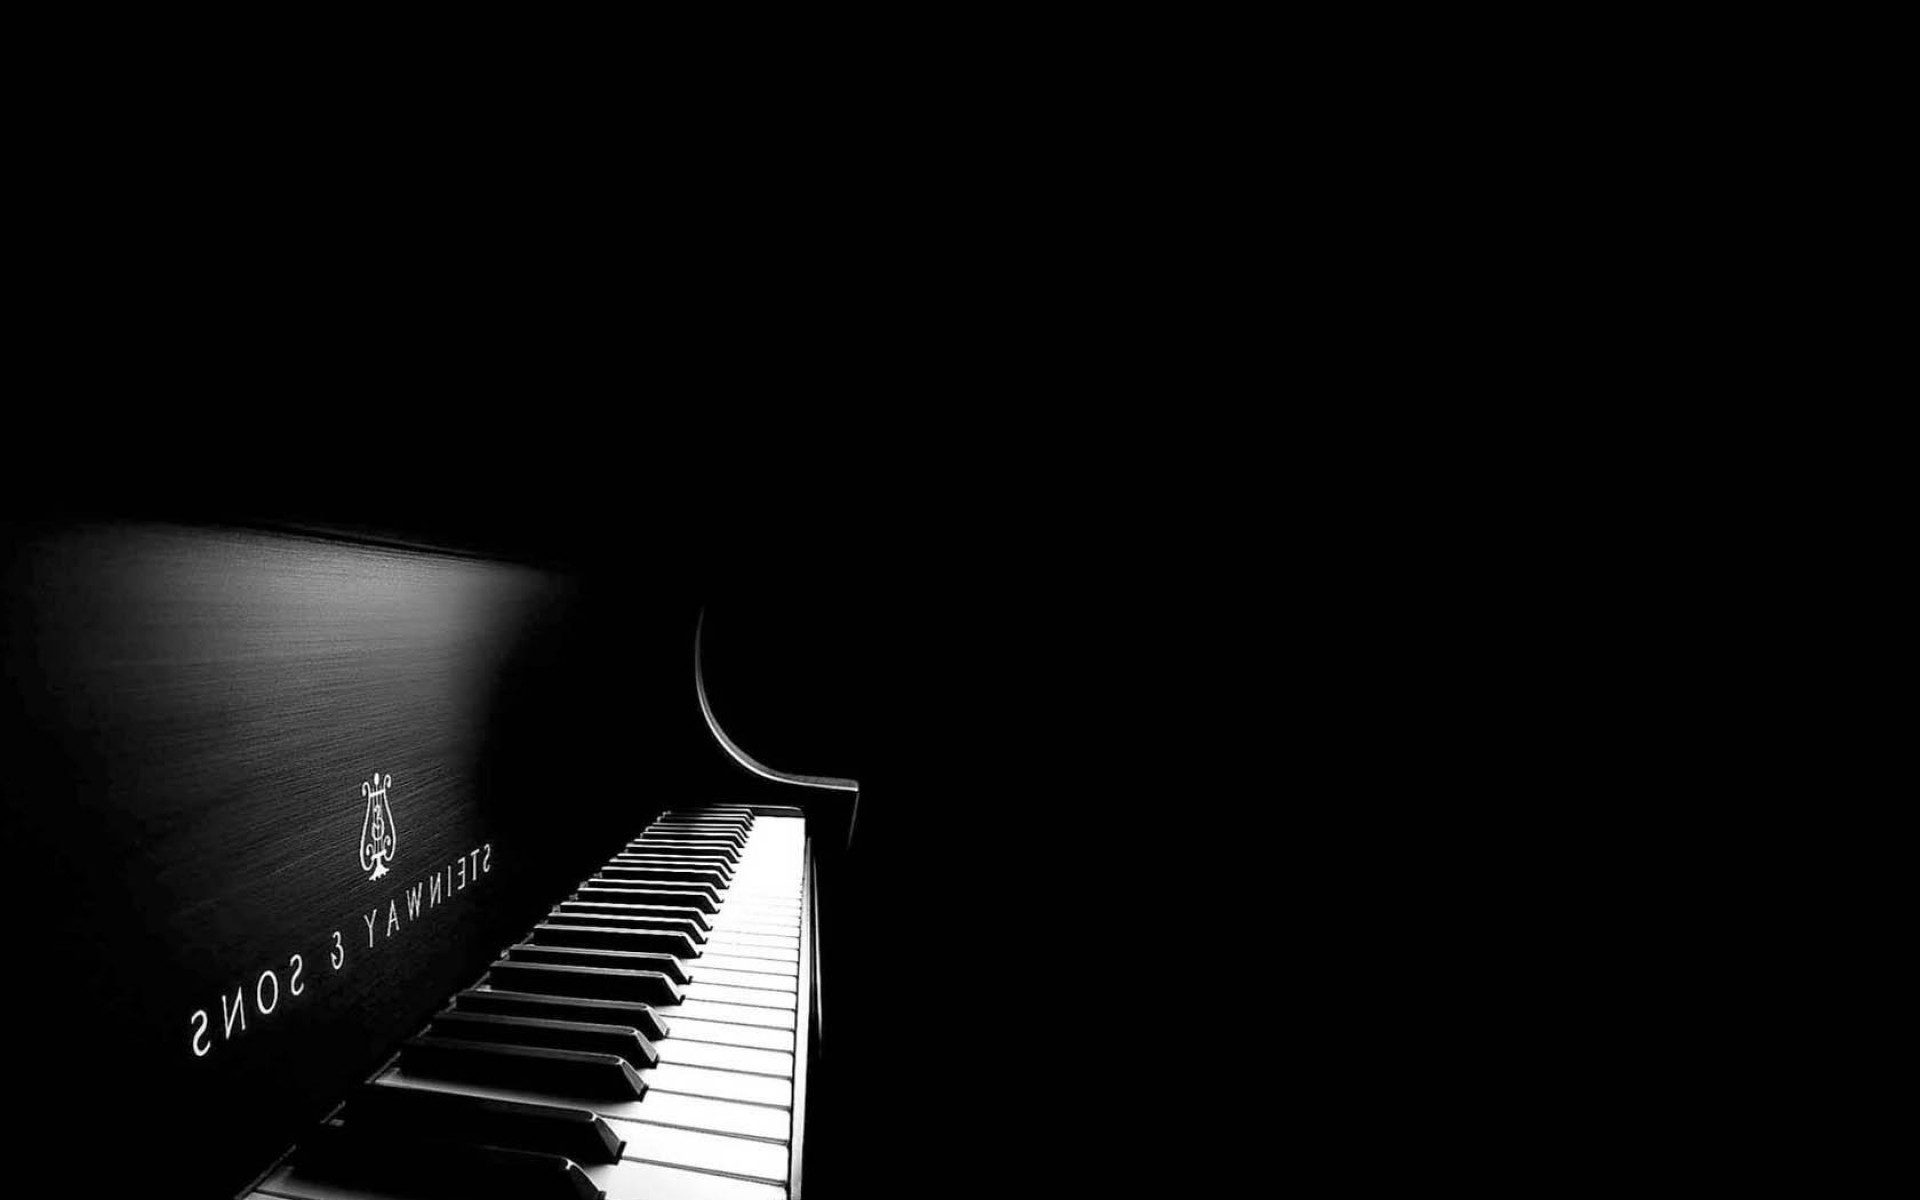 Piano Hd Wallpapers Movie Hd Wallpapers